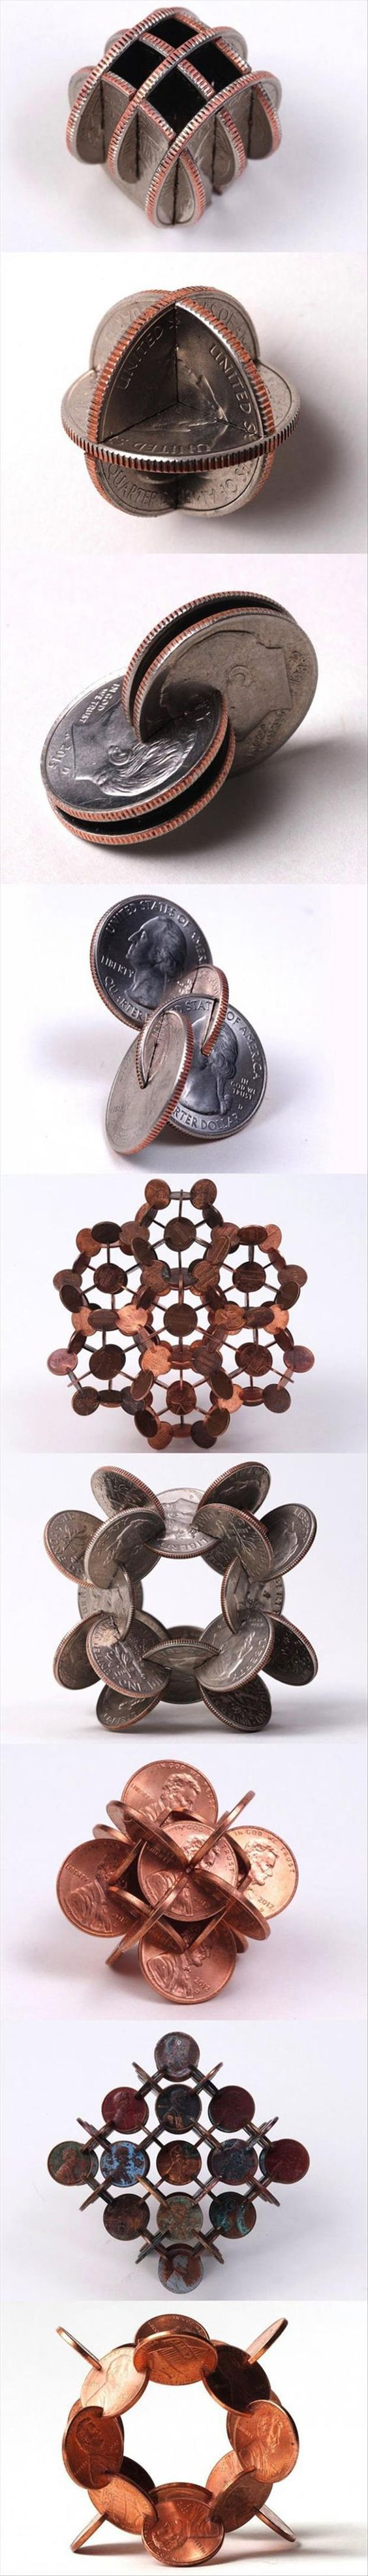 Repetition & Rhythm: The sets of coins are joined and arranged differently from set to set. The...